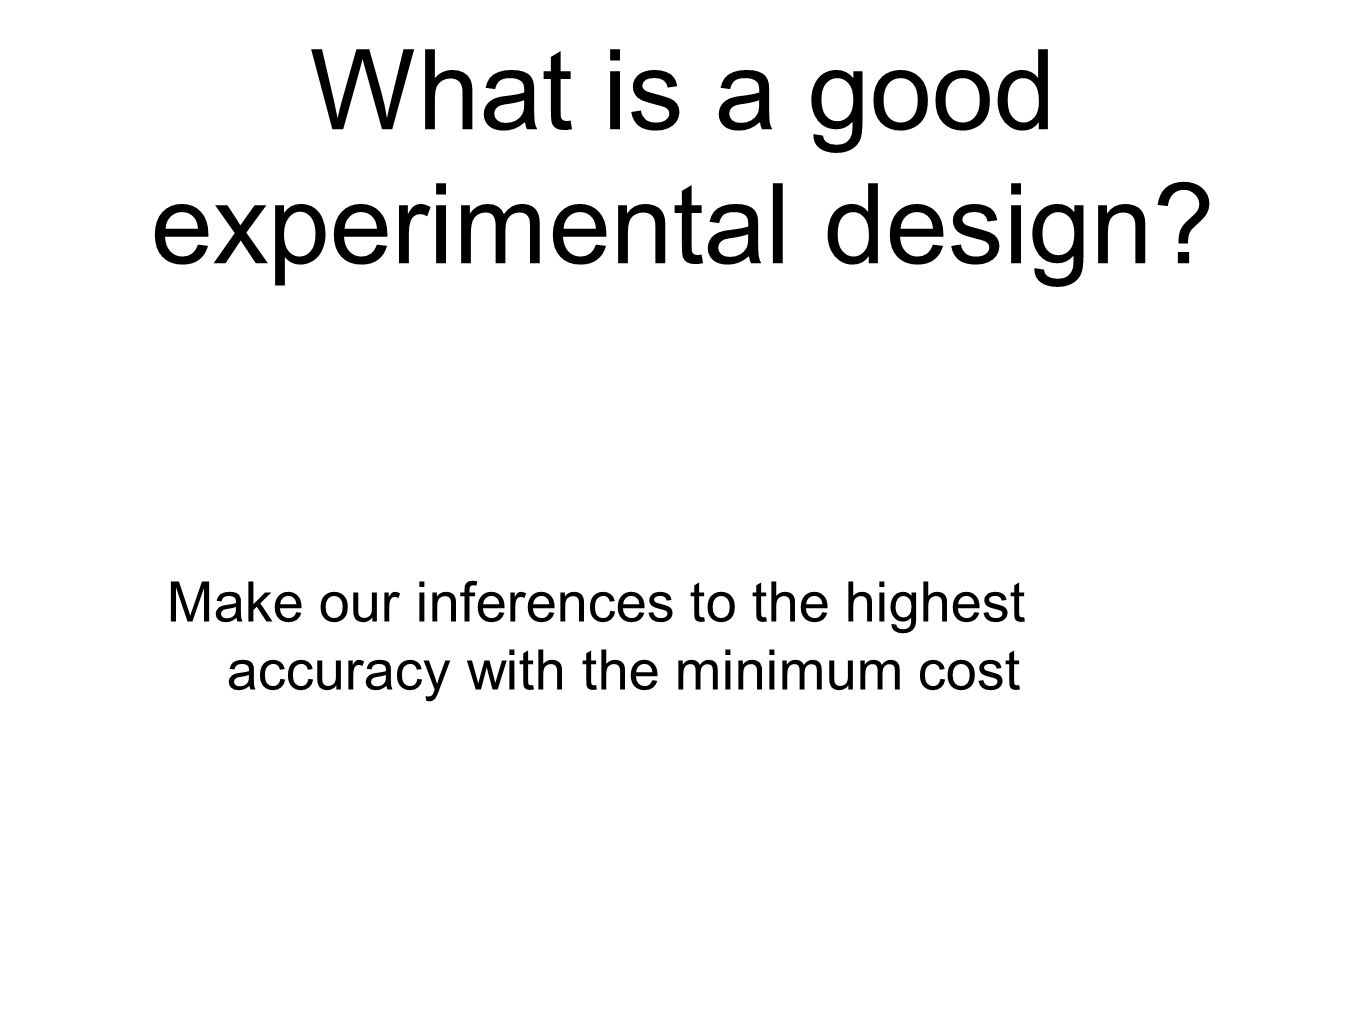 What is a good experimental design? Make our inferences to the highest accuracy with the minimum cost